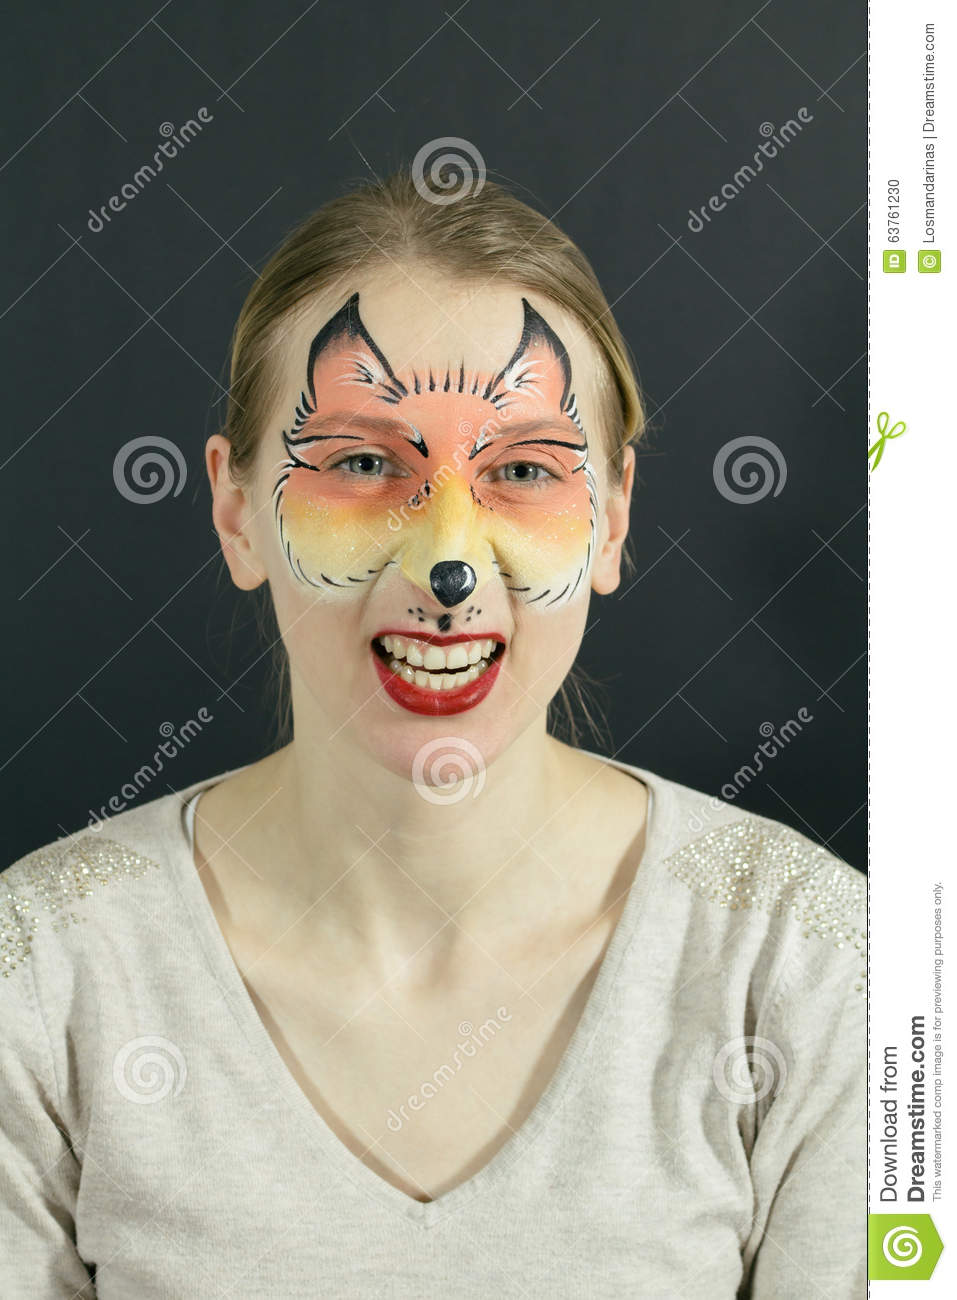 Fox Face Painting Stock Photo - Image: 63761230